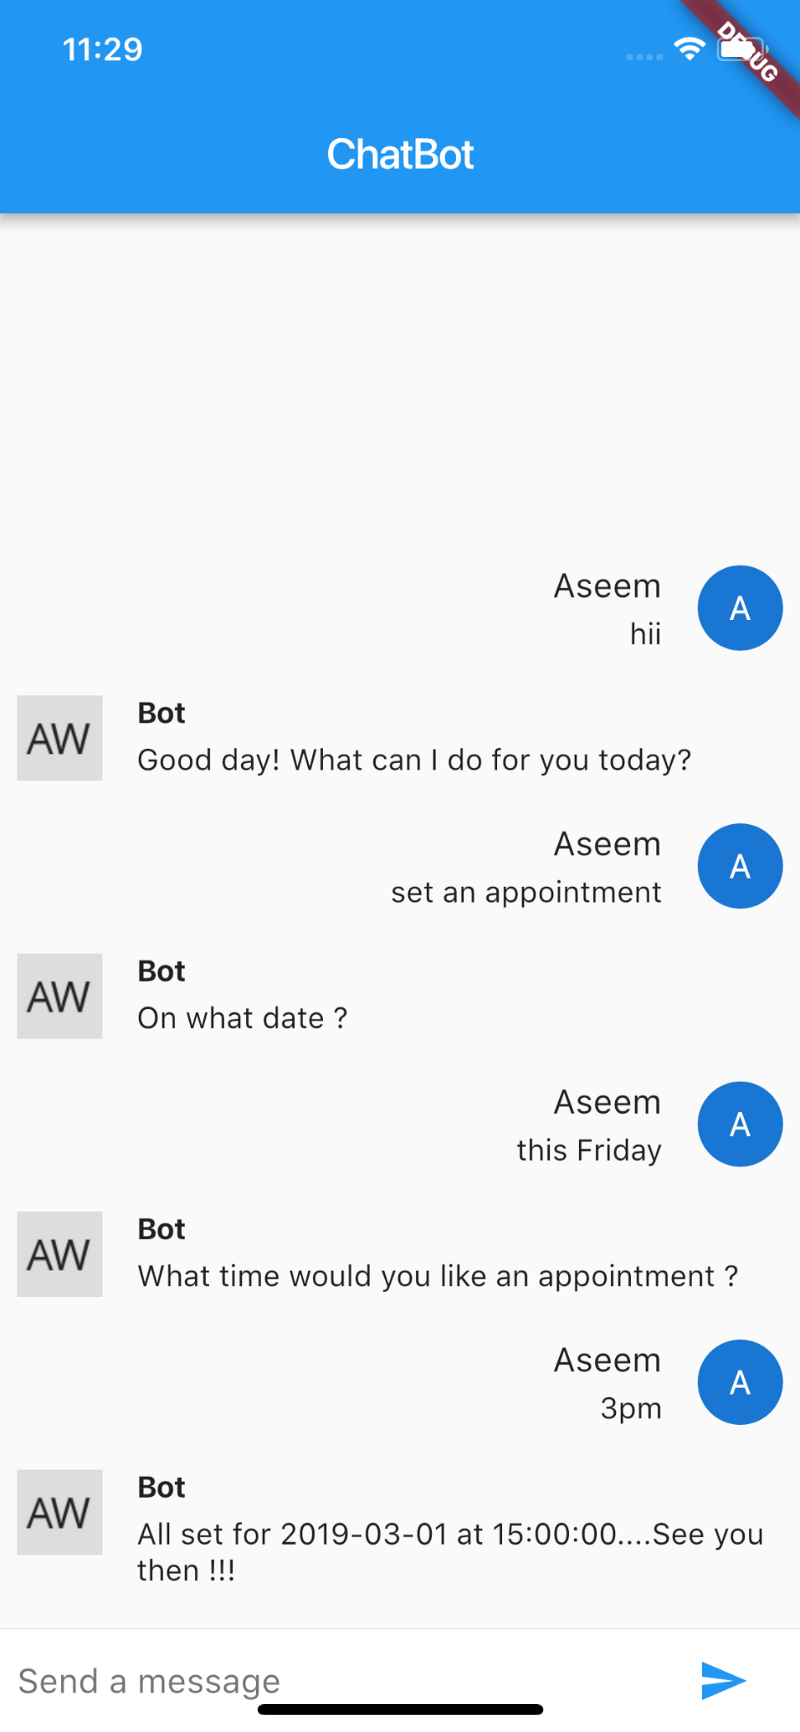 Flutter and bots (dialogFlow)